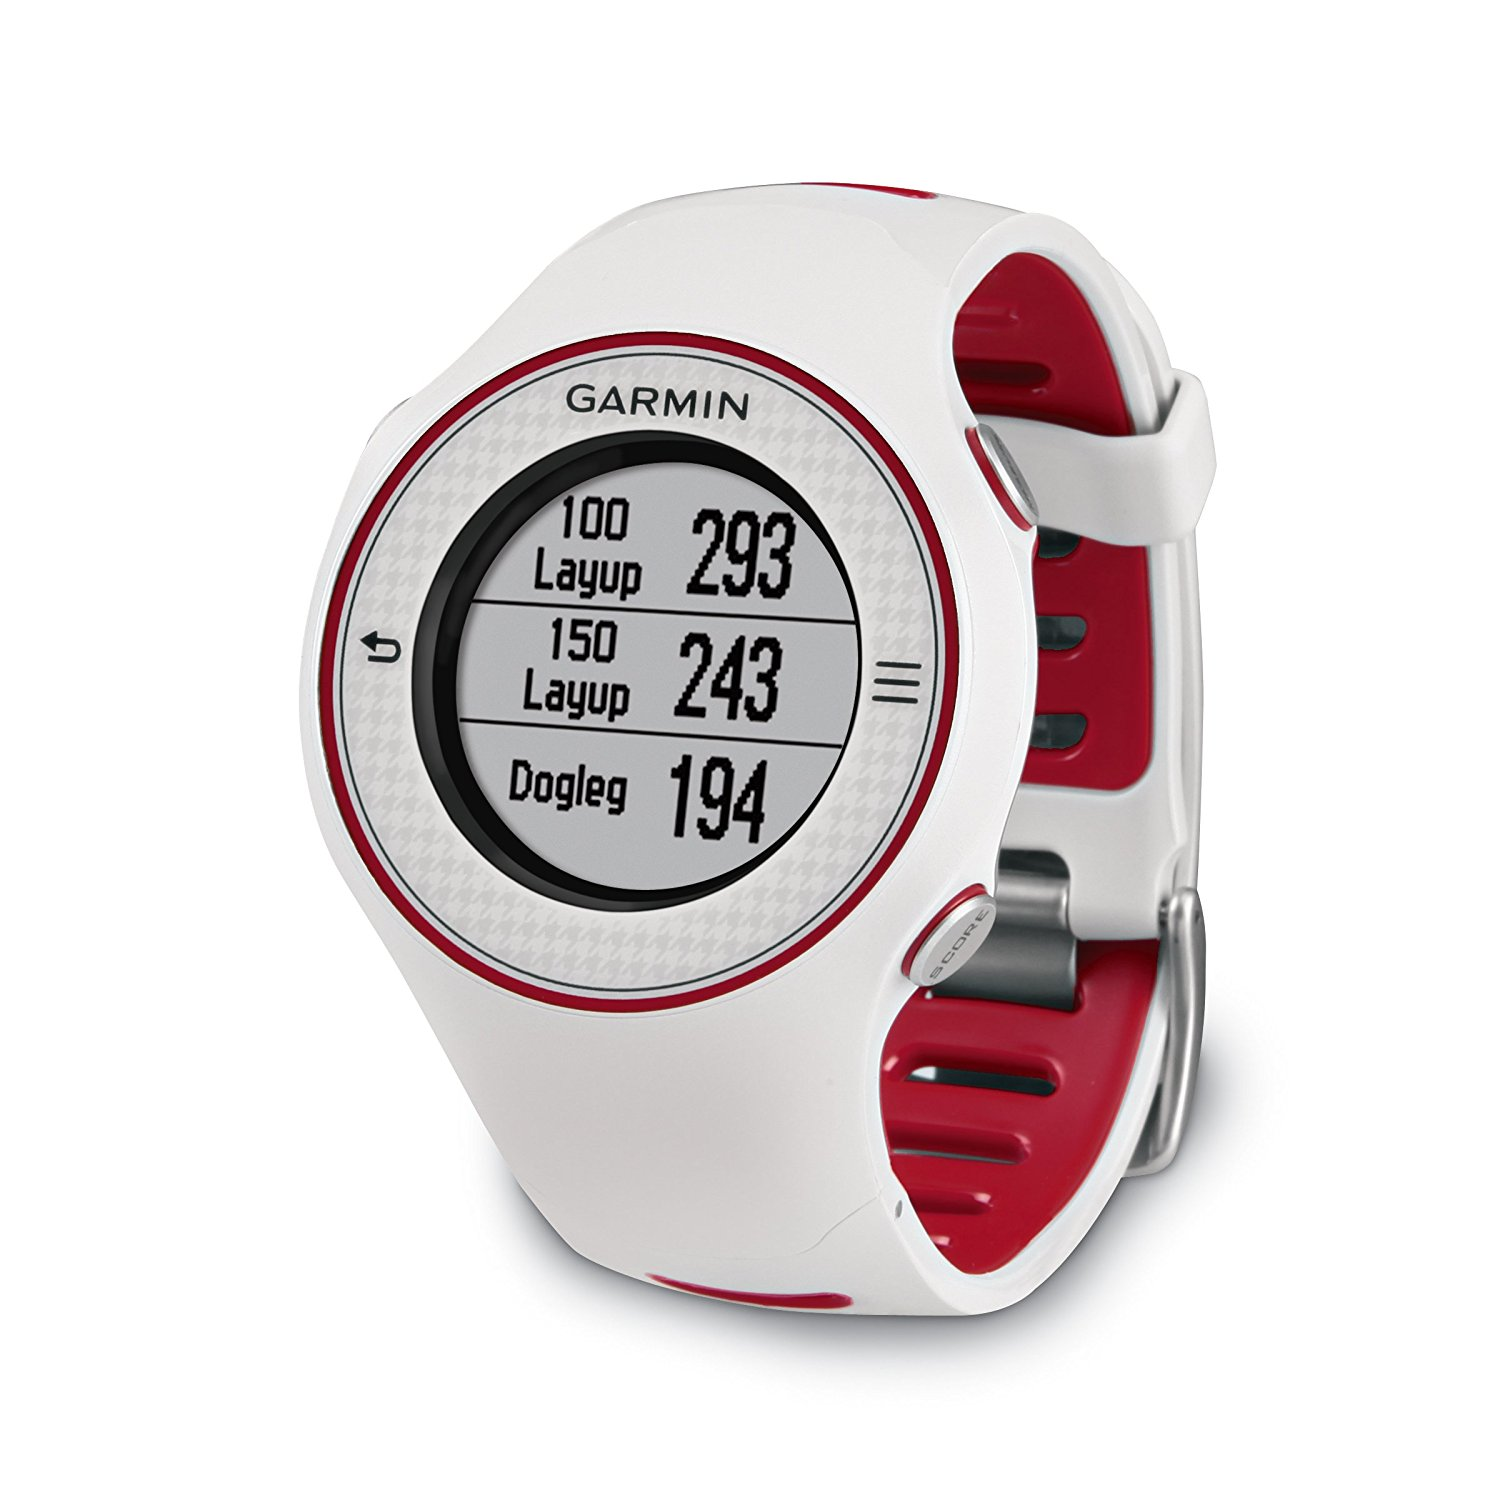 Approach S3 Touchscreen Customizeable GPS Preloaded Touch & Move Golf watch 010-01049-00 by Garmin